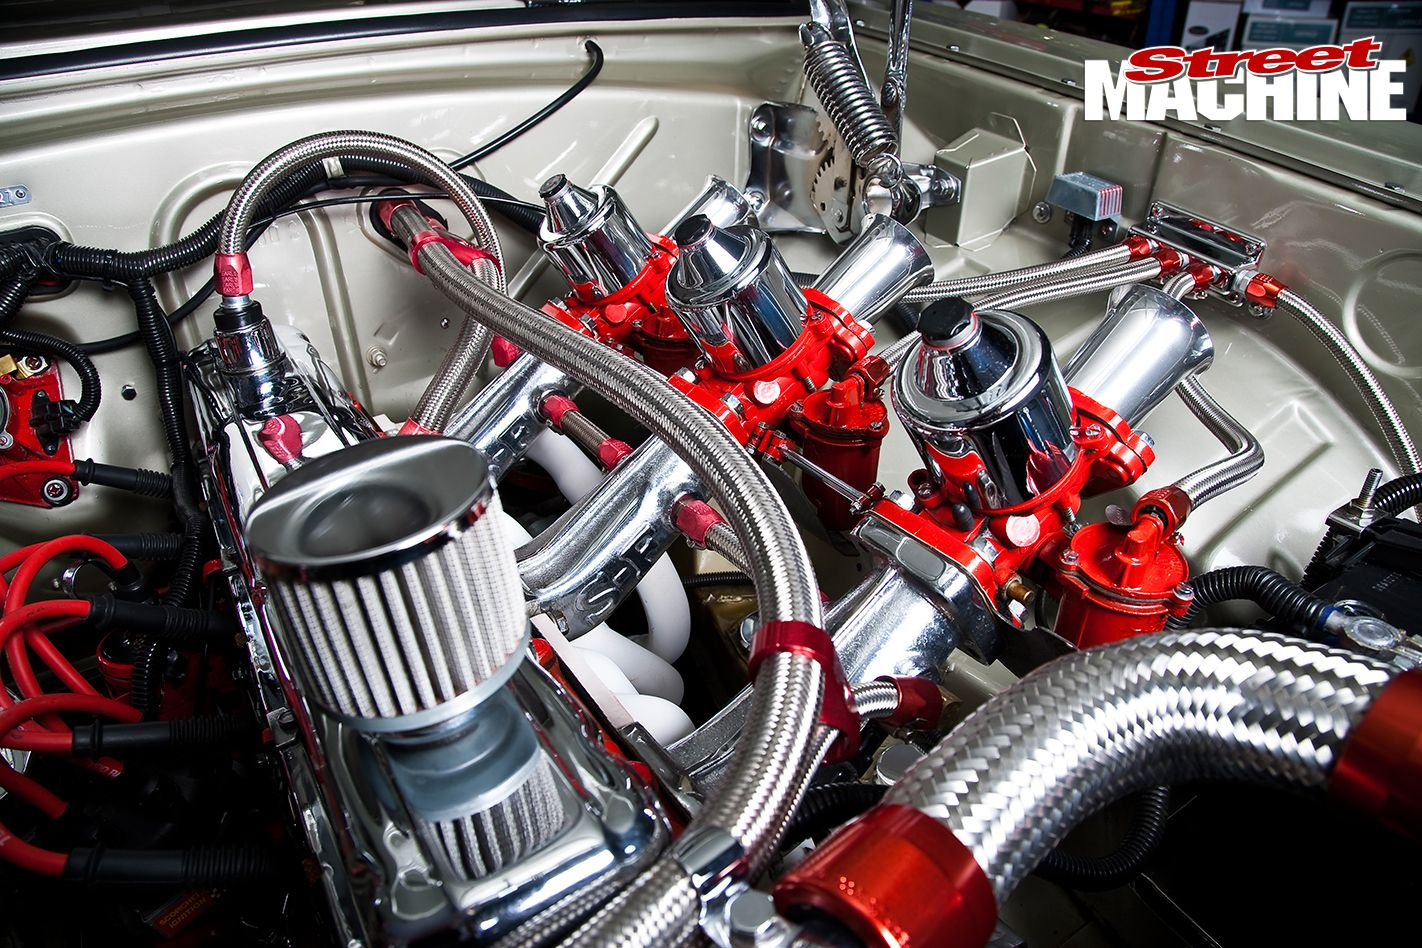 hr holden engine detail 4 engines holden muscle cars cars